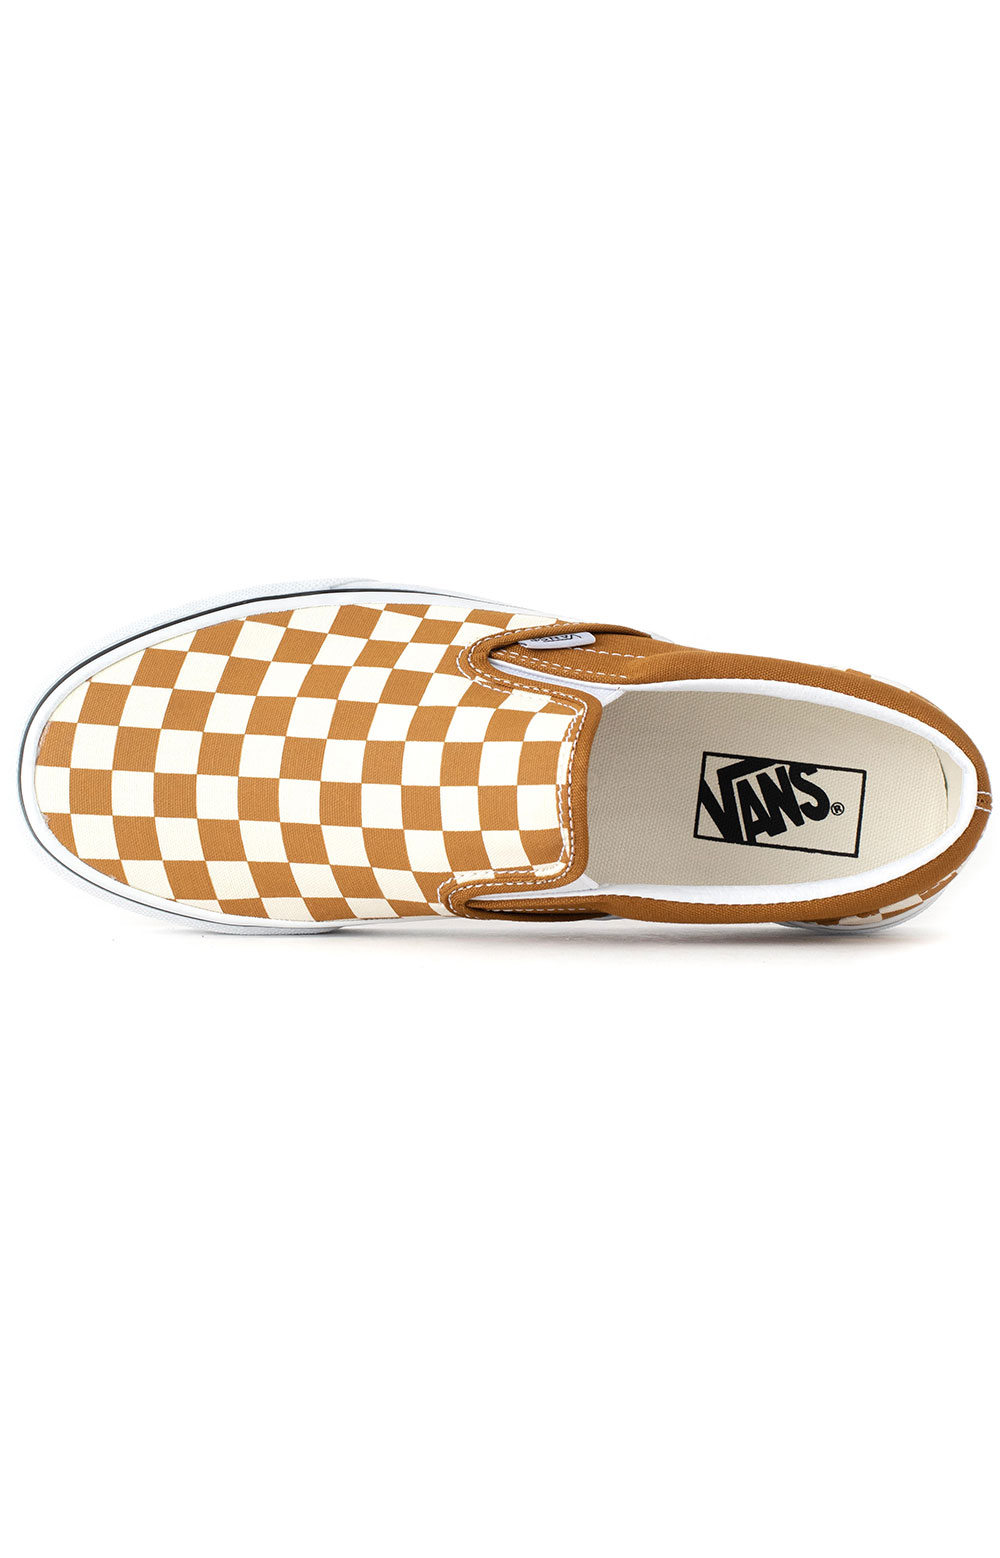 (3TB9HN) Checkerboard Classic Slip-On Shoes - Golden Brown  2